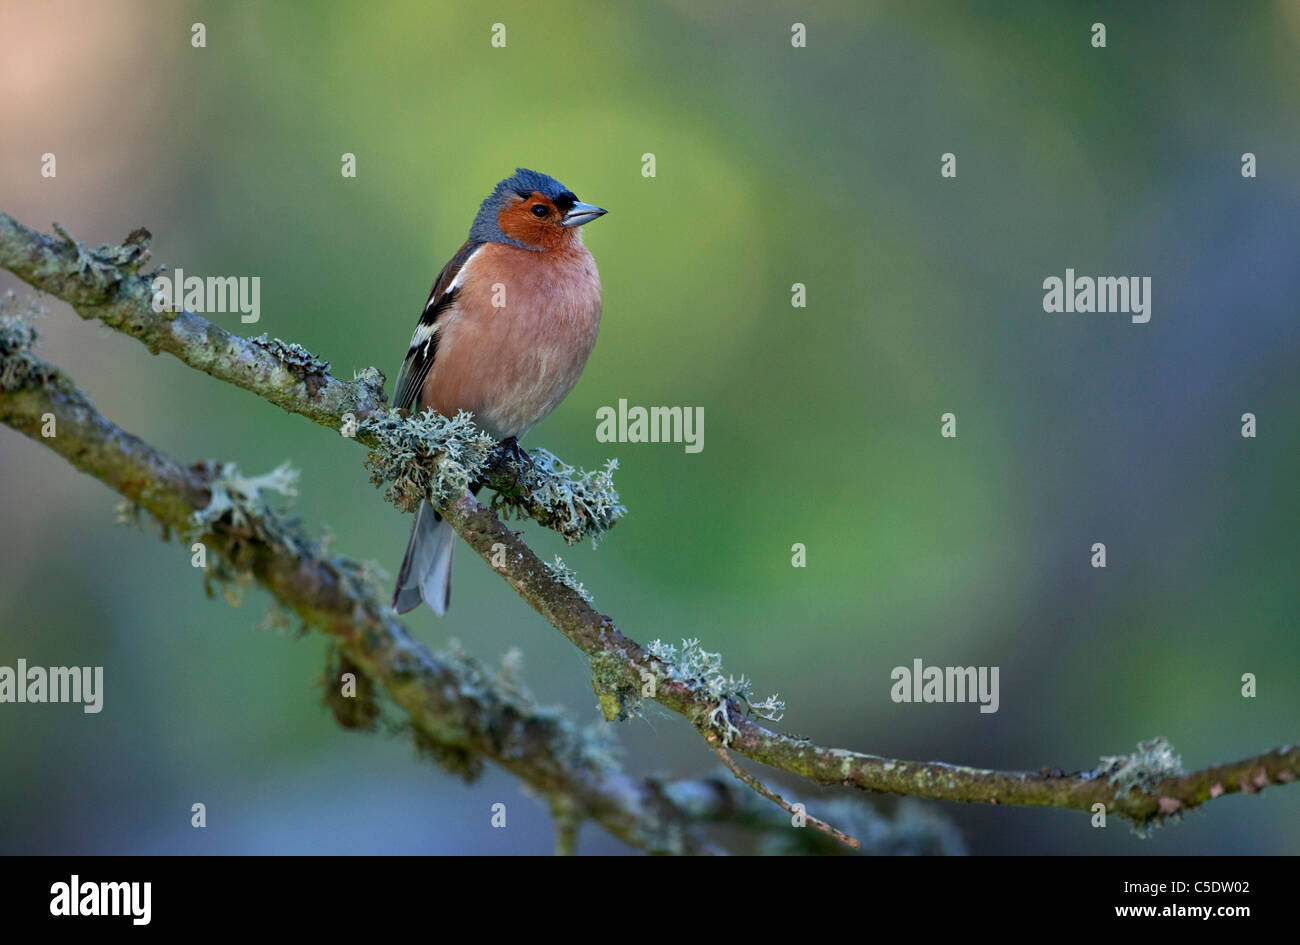 Close-up of Chaffinch bird on branch against blurred background - Stock Image